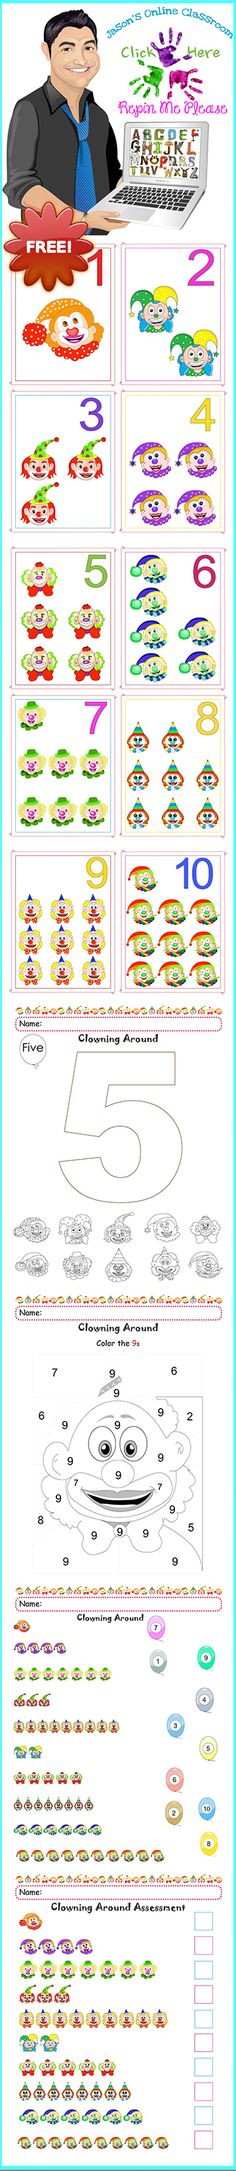 100% FREE - Custom created and designed packet aimed at helping children learn the numerals one through ten.  The clown faces related to different numerals and are consistent throughout the packet.  Enjoy!